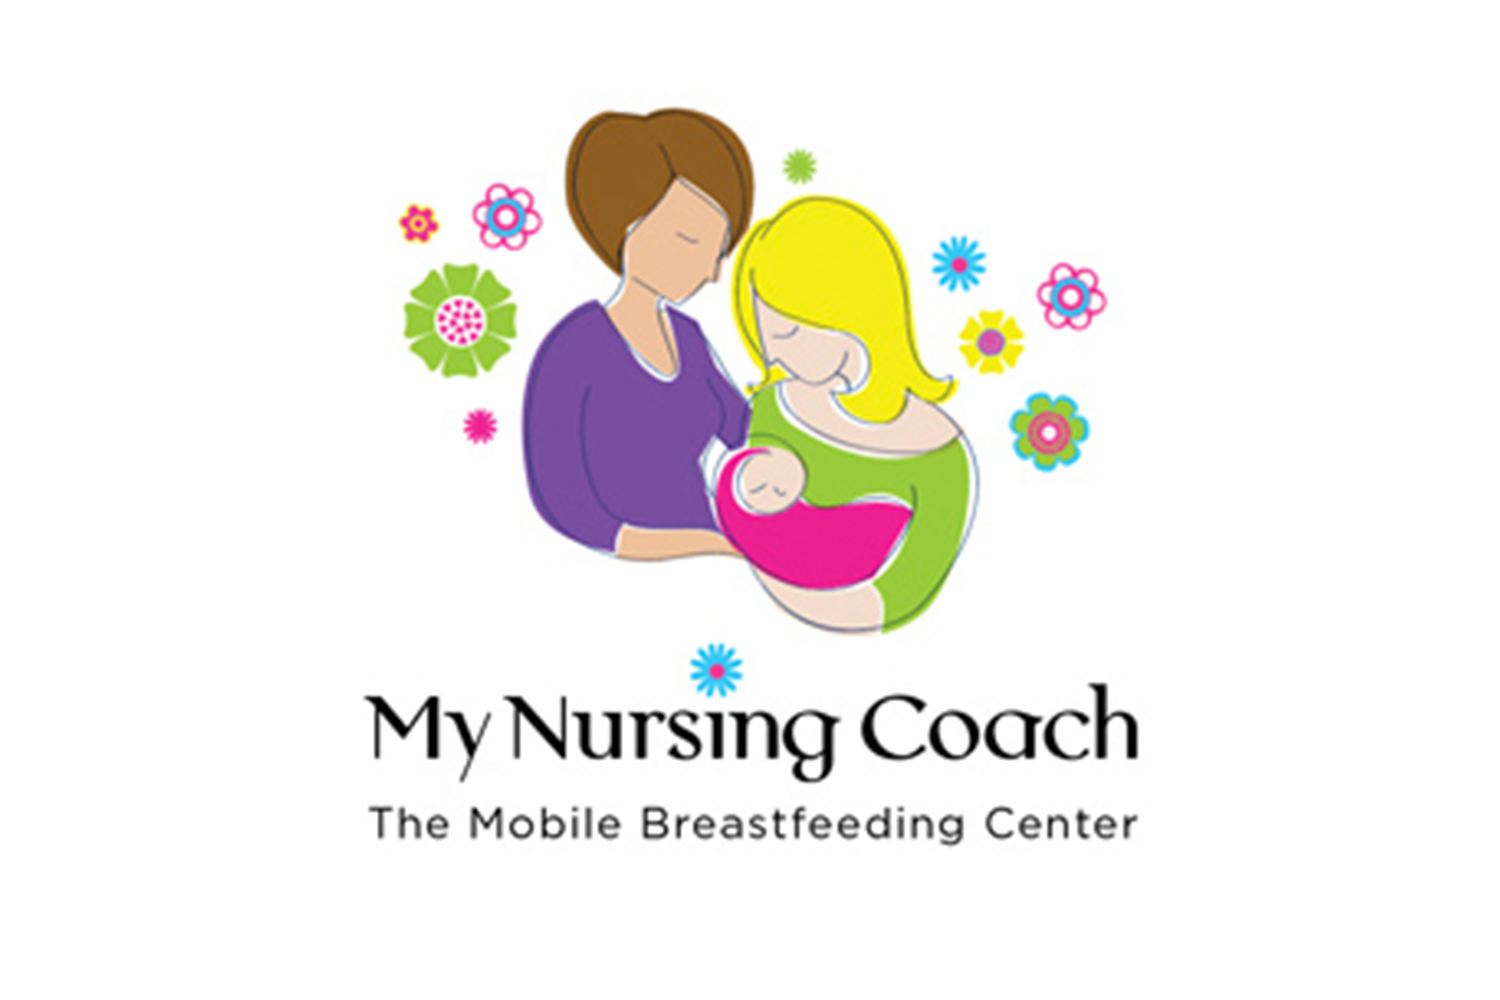 The patron saint of breastfeeding - Founded by Linda Hanna, My Nursing Coach delivers breastfeeding education and postpartum support right to your doorstep.